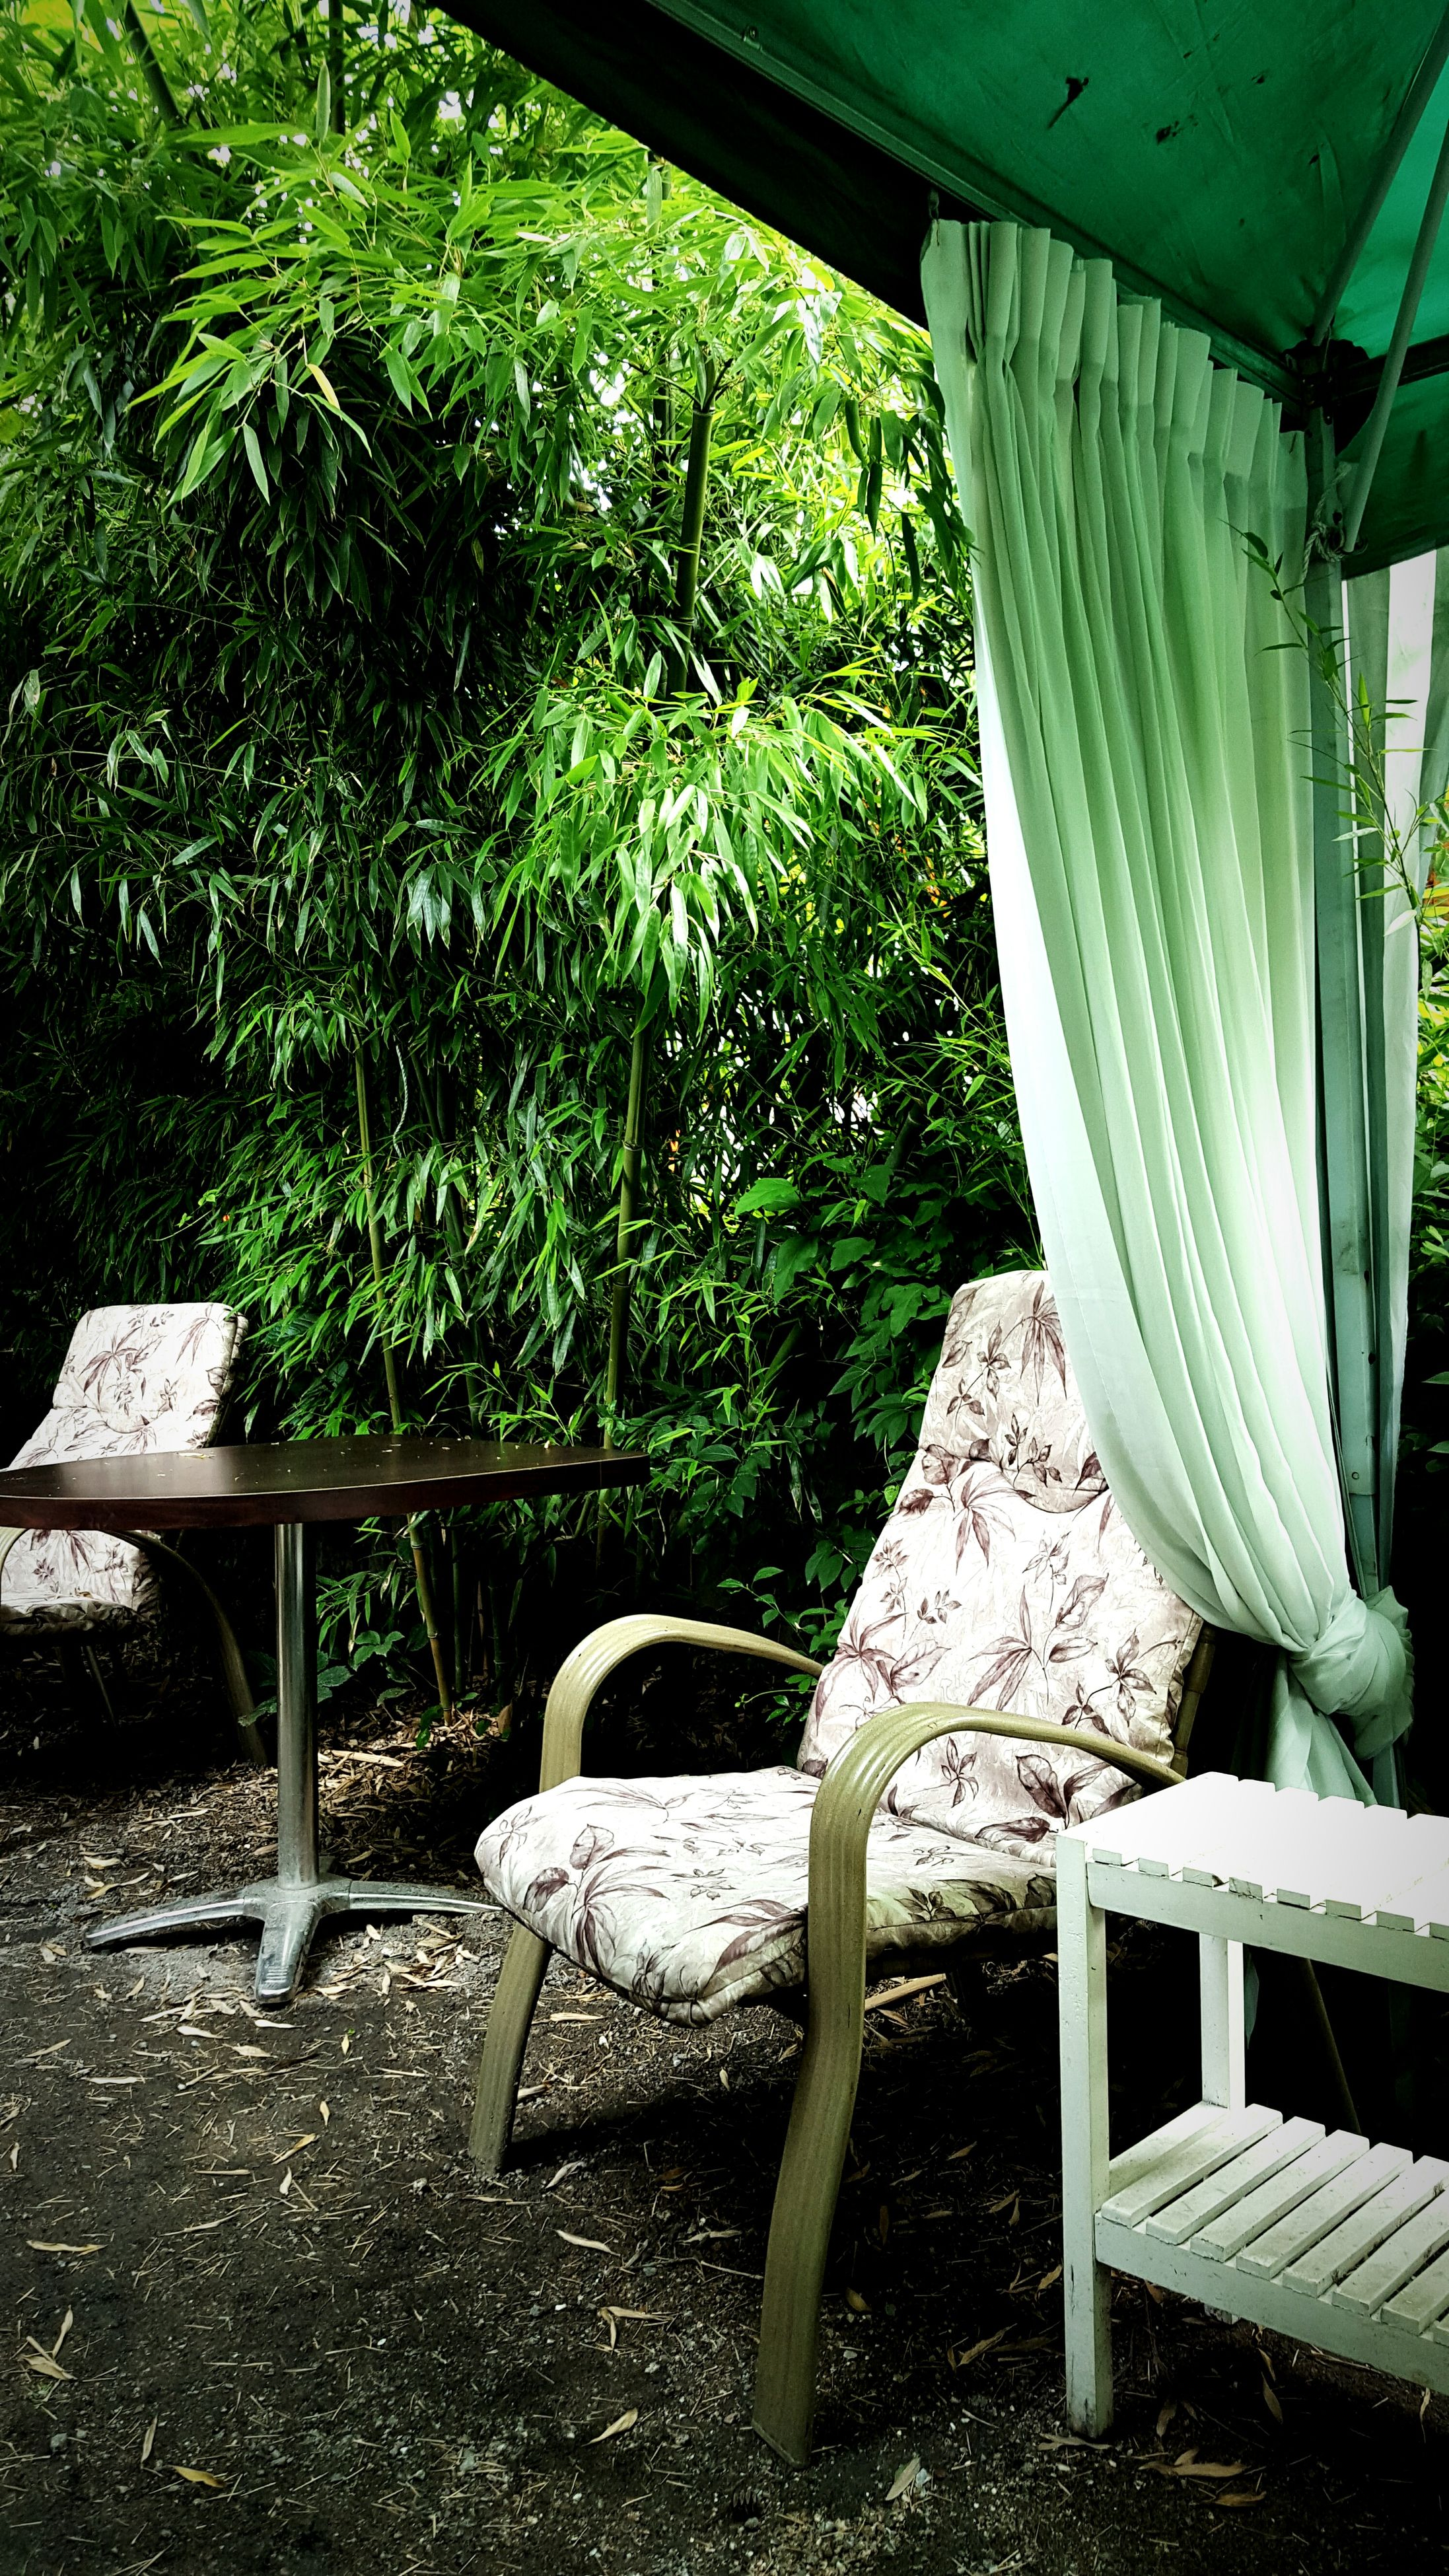 chair, bench, absence, empty, seat, plant, growth, tree, front or back yard, leaf, abandoned, day, potted plant, sunlight, no people, green color, nature, wood - material, indoors, metal